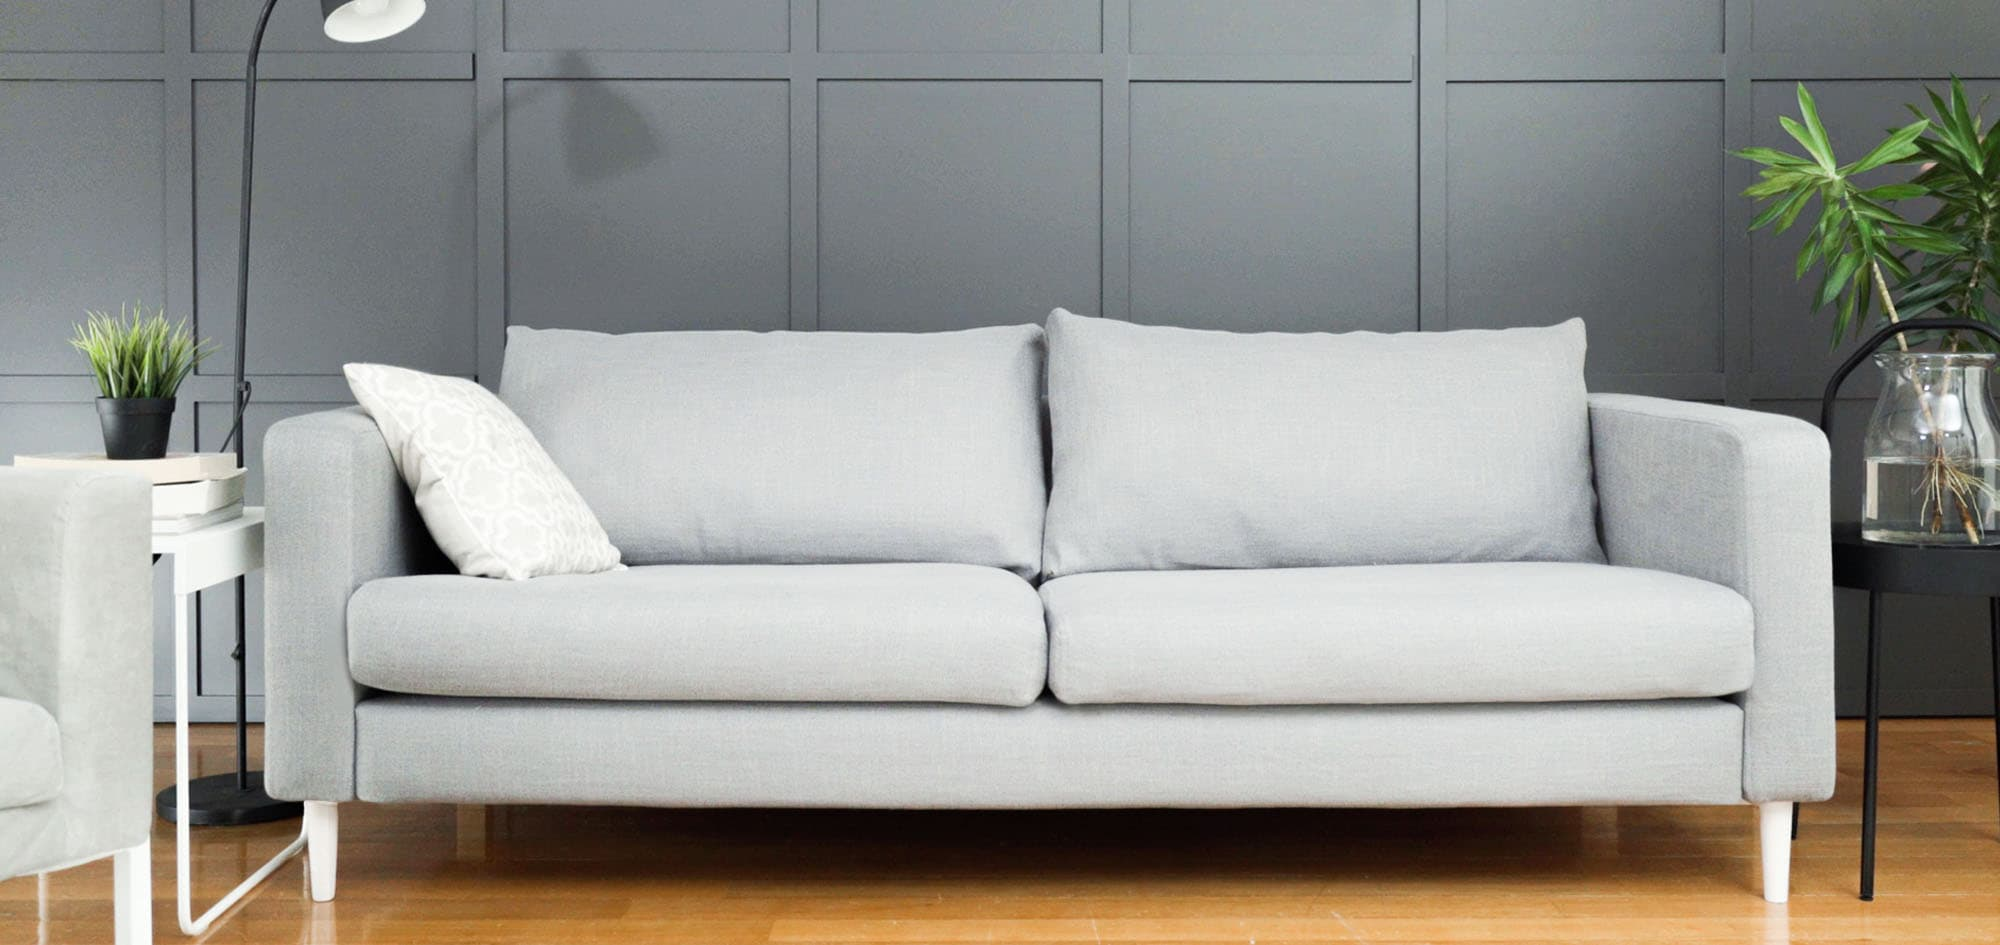 Grey Karlstad sofa cover with white legs